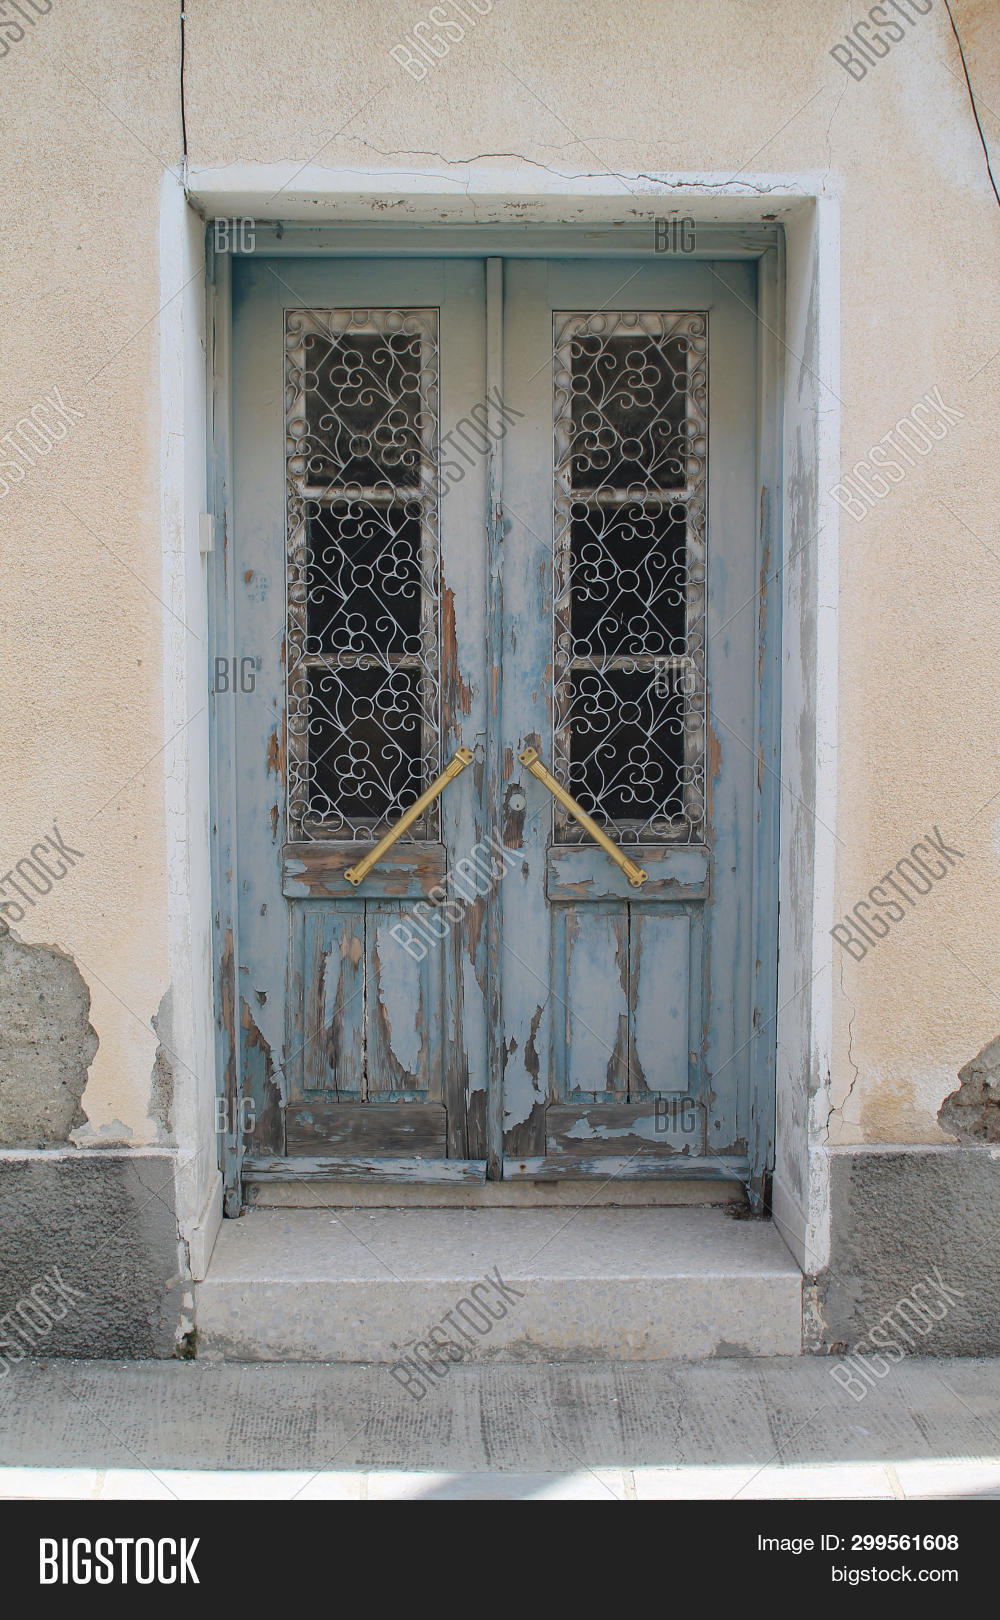 Shabby Old Fasioned Image Photo Free Trial Bigstock